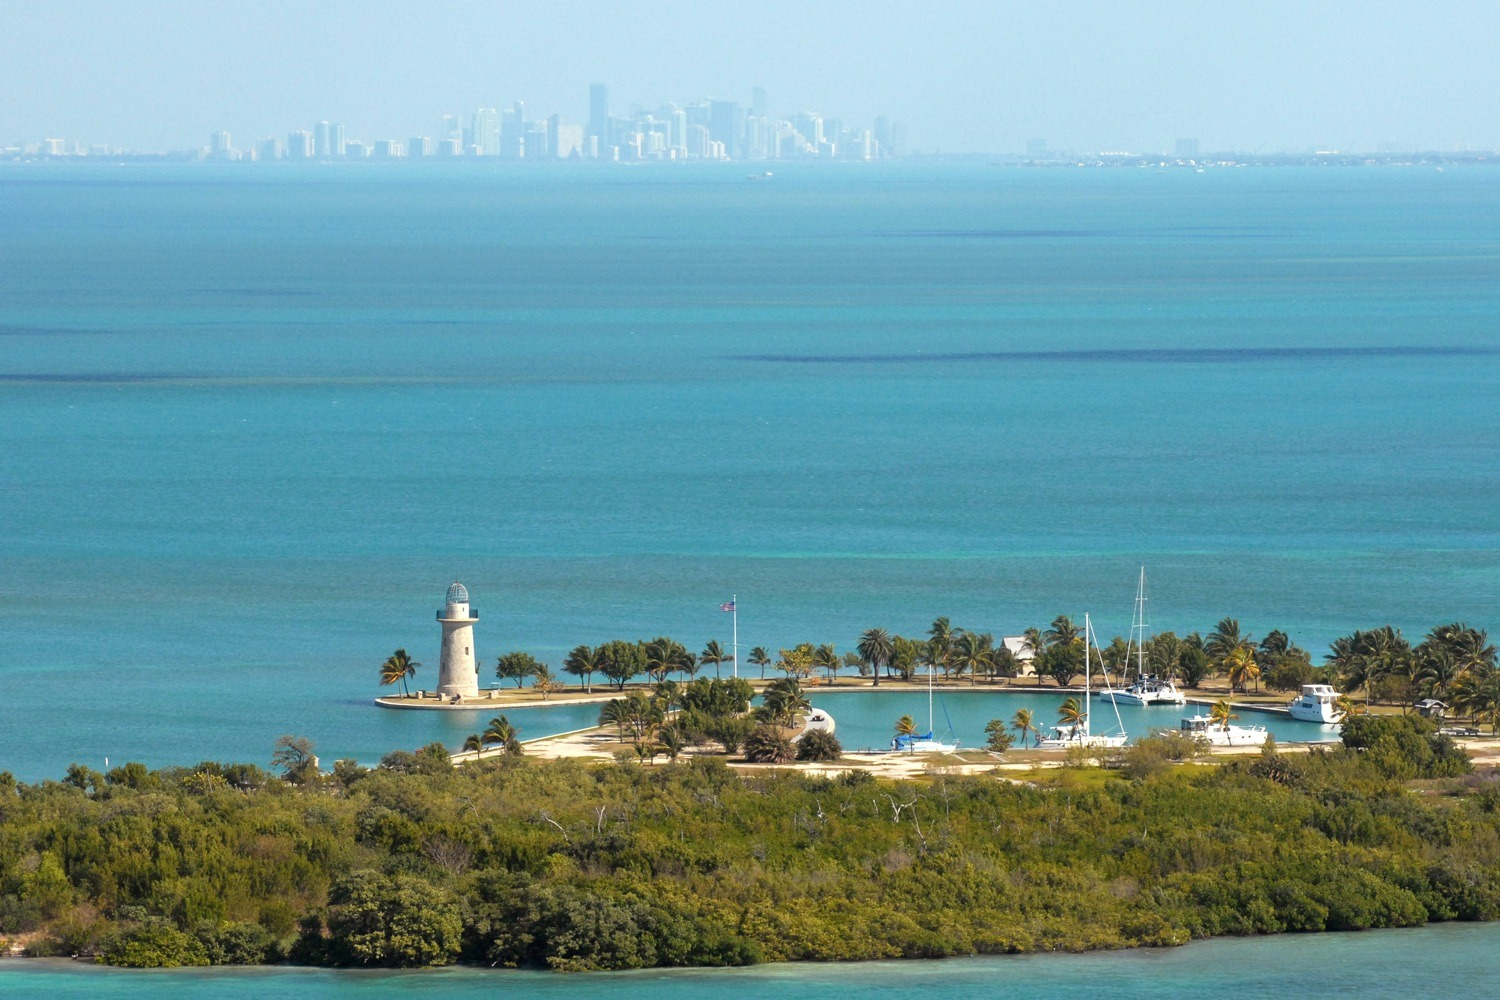 Biscayne National Underwater Park